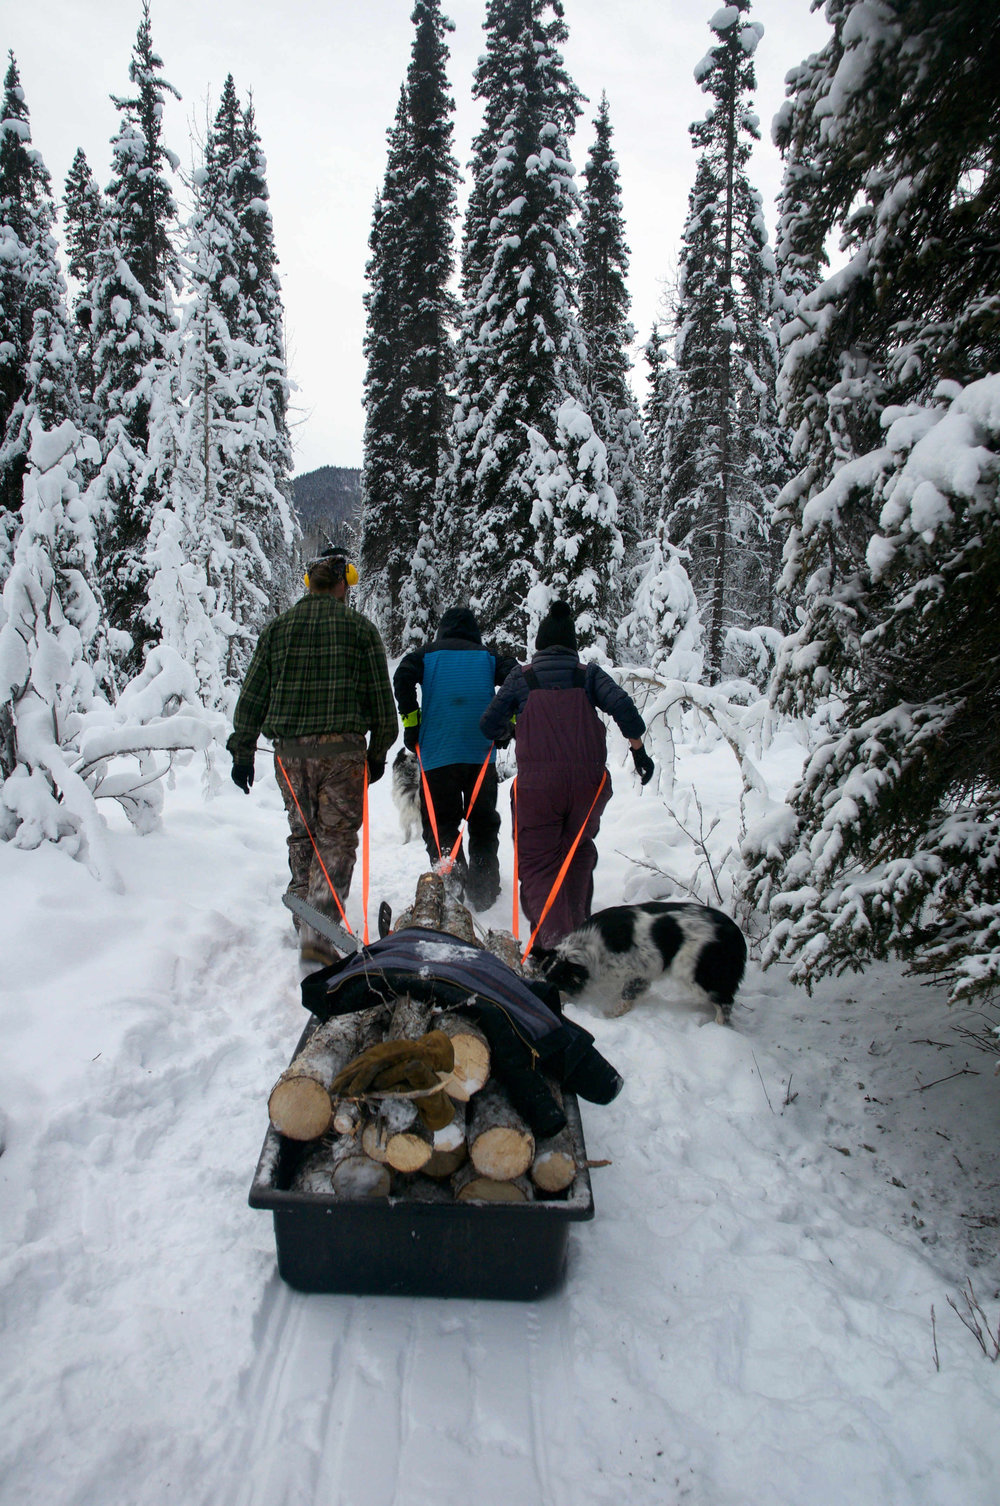 Ali Towers, Scott Anthony and their friend Isaac Hinckley pulling their logging sled after cutting down a tree.